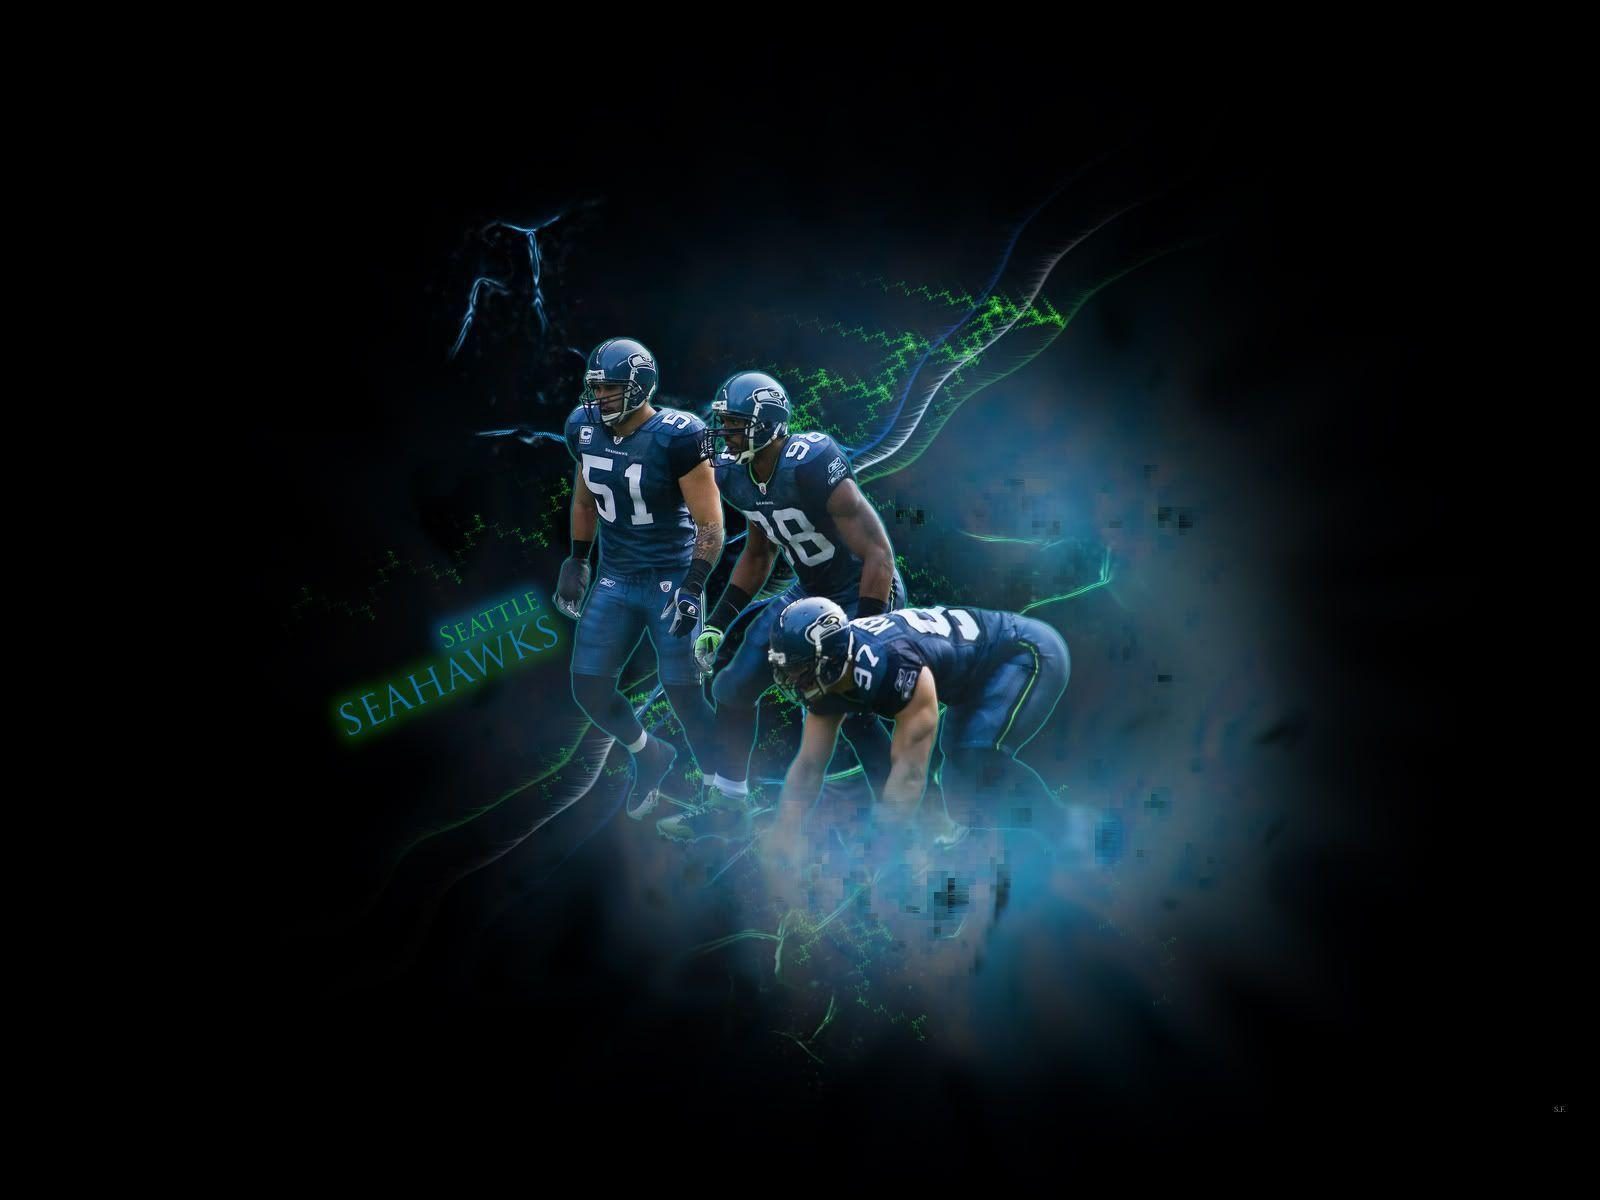 Seahawk Wallpapers - Wallpaper Cave